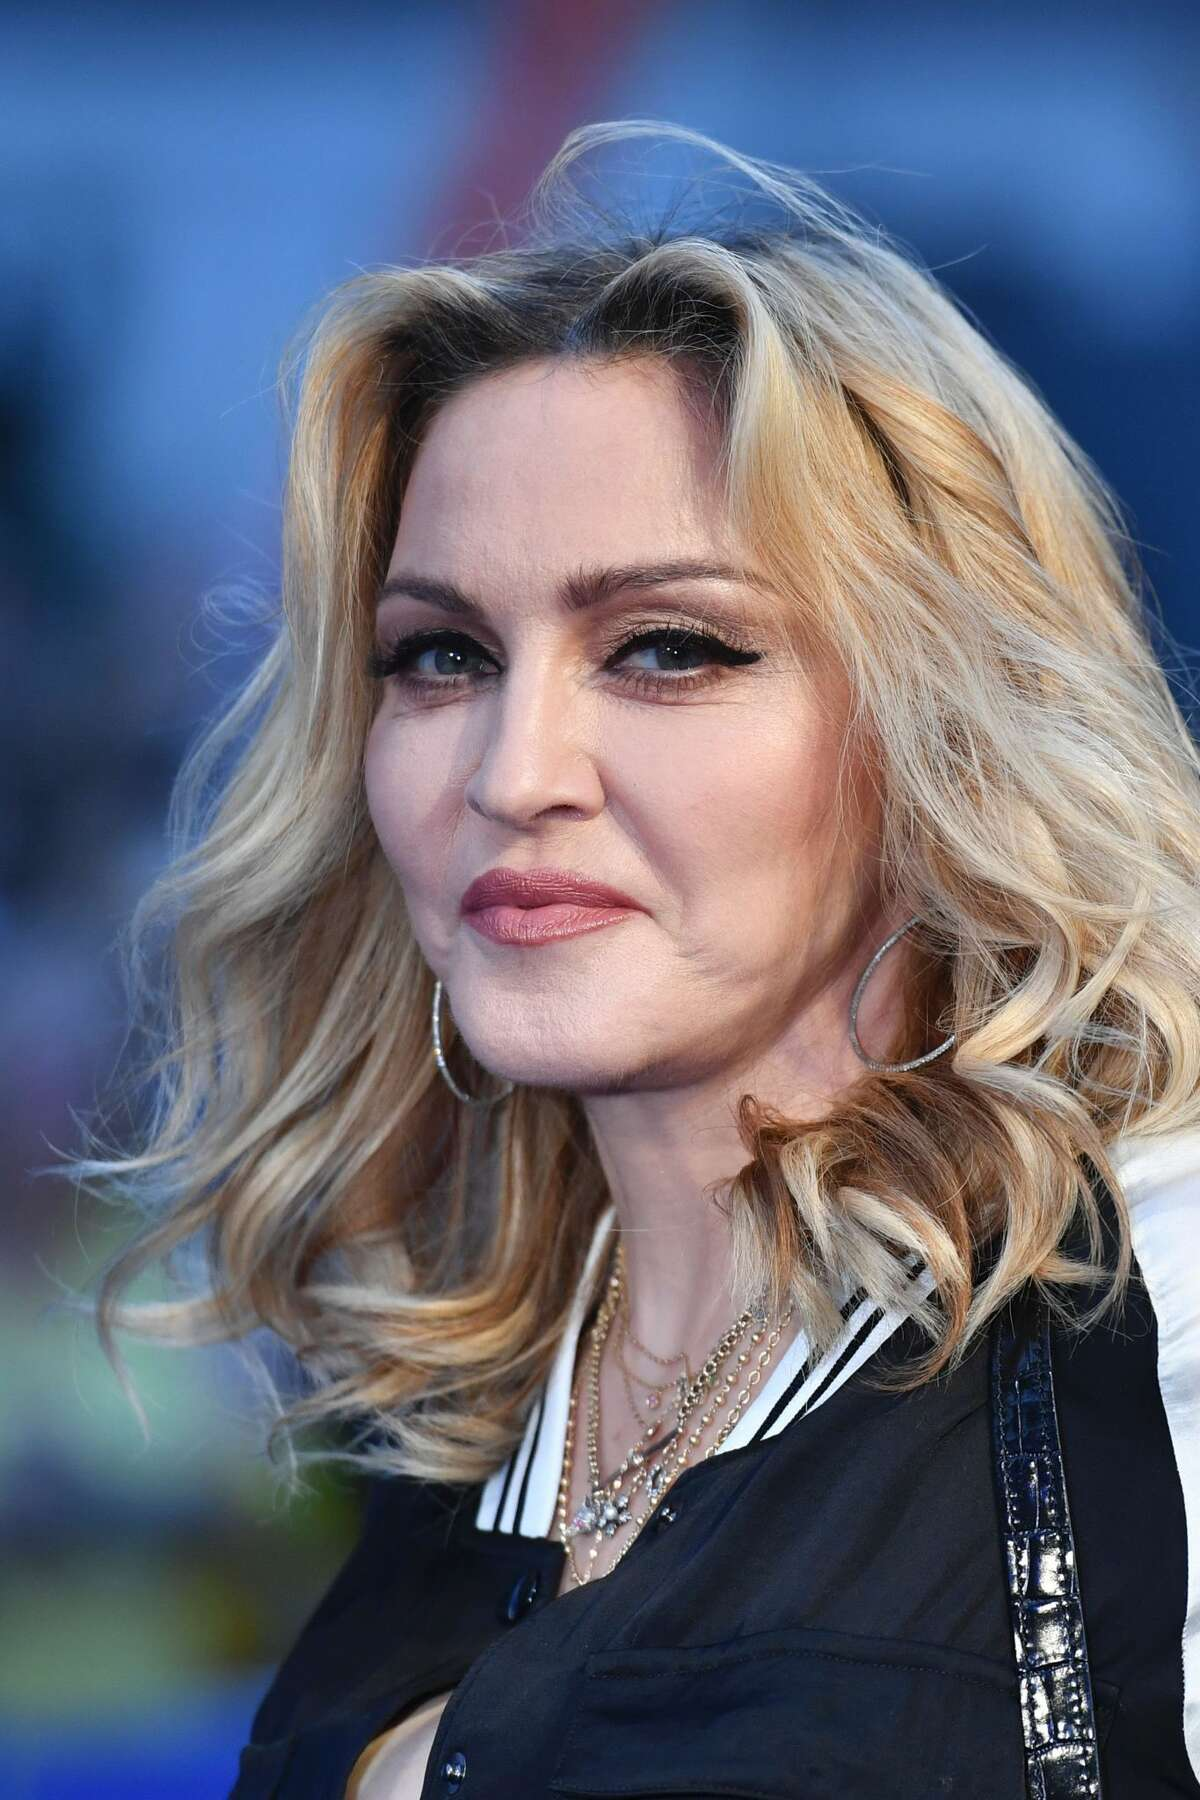 Madonna currently under fire from sharing video spewing misinformation on coronavirus